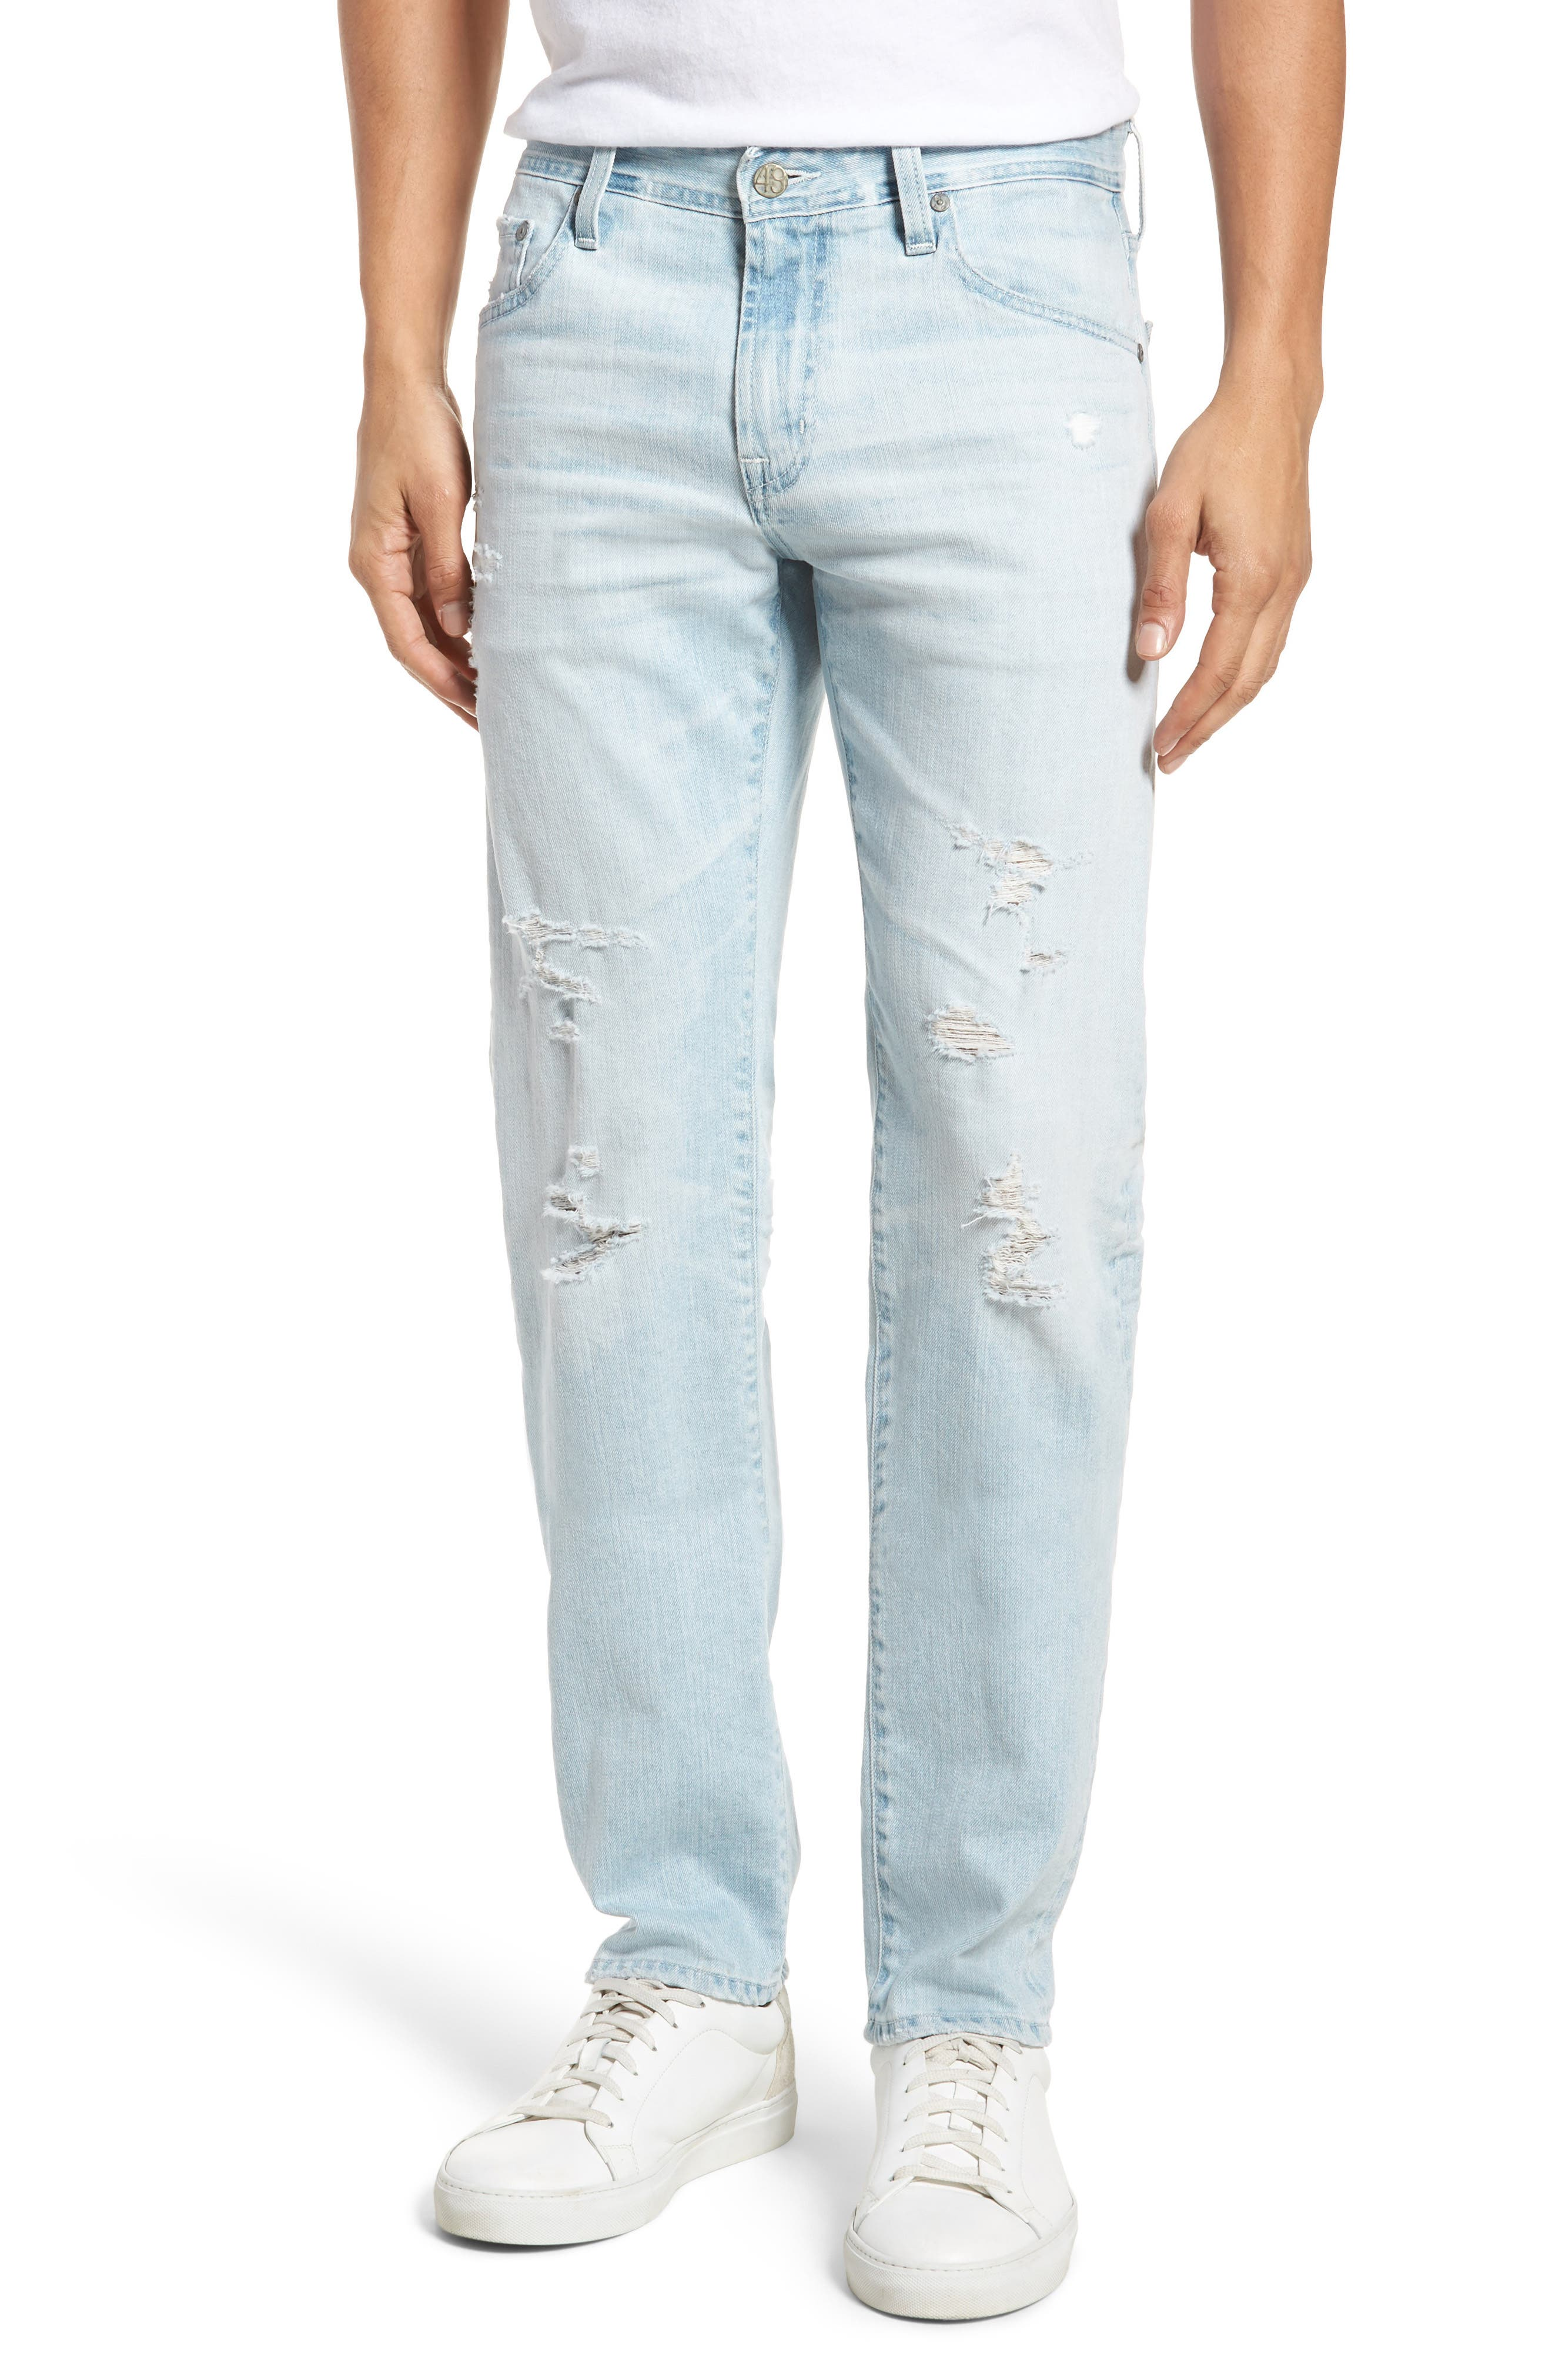 Tellis Slim Fit Jeans,                             Main thumbnail 1, color,                             400